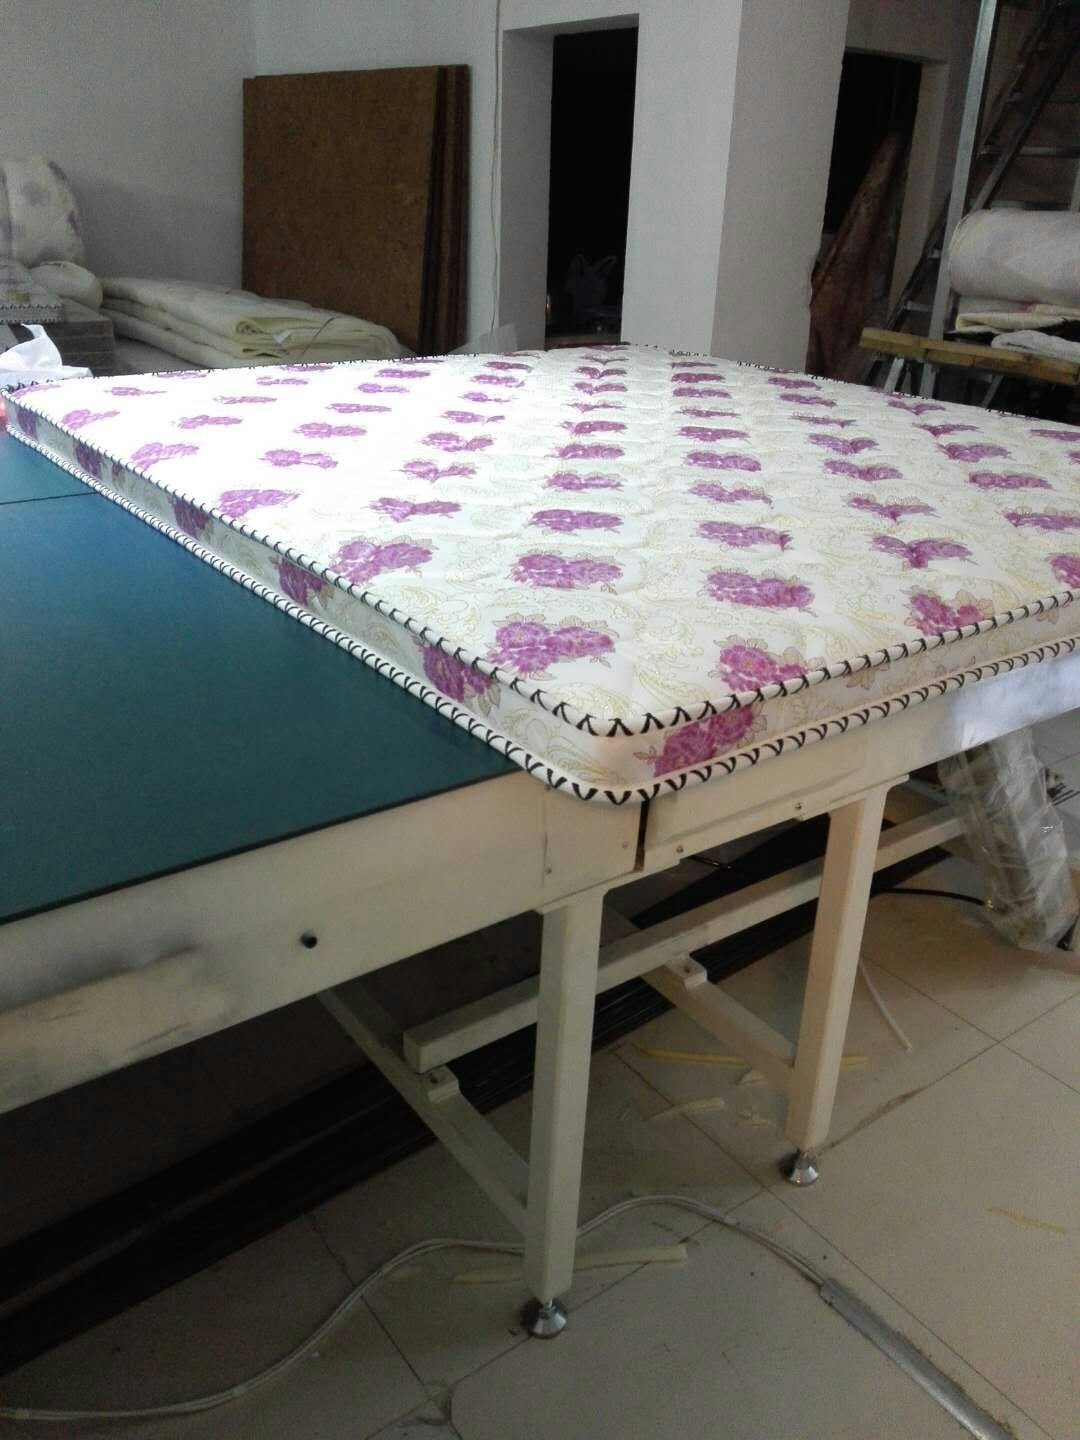 Coir mattress finished sewing